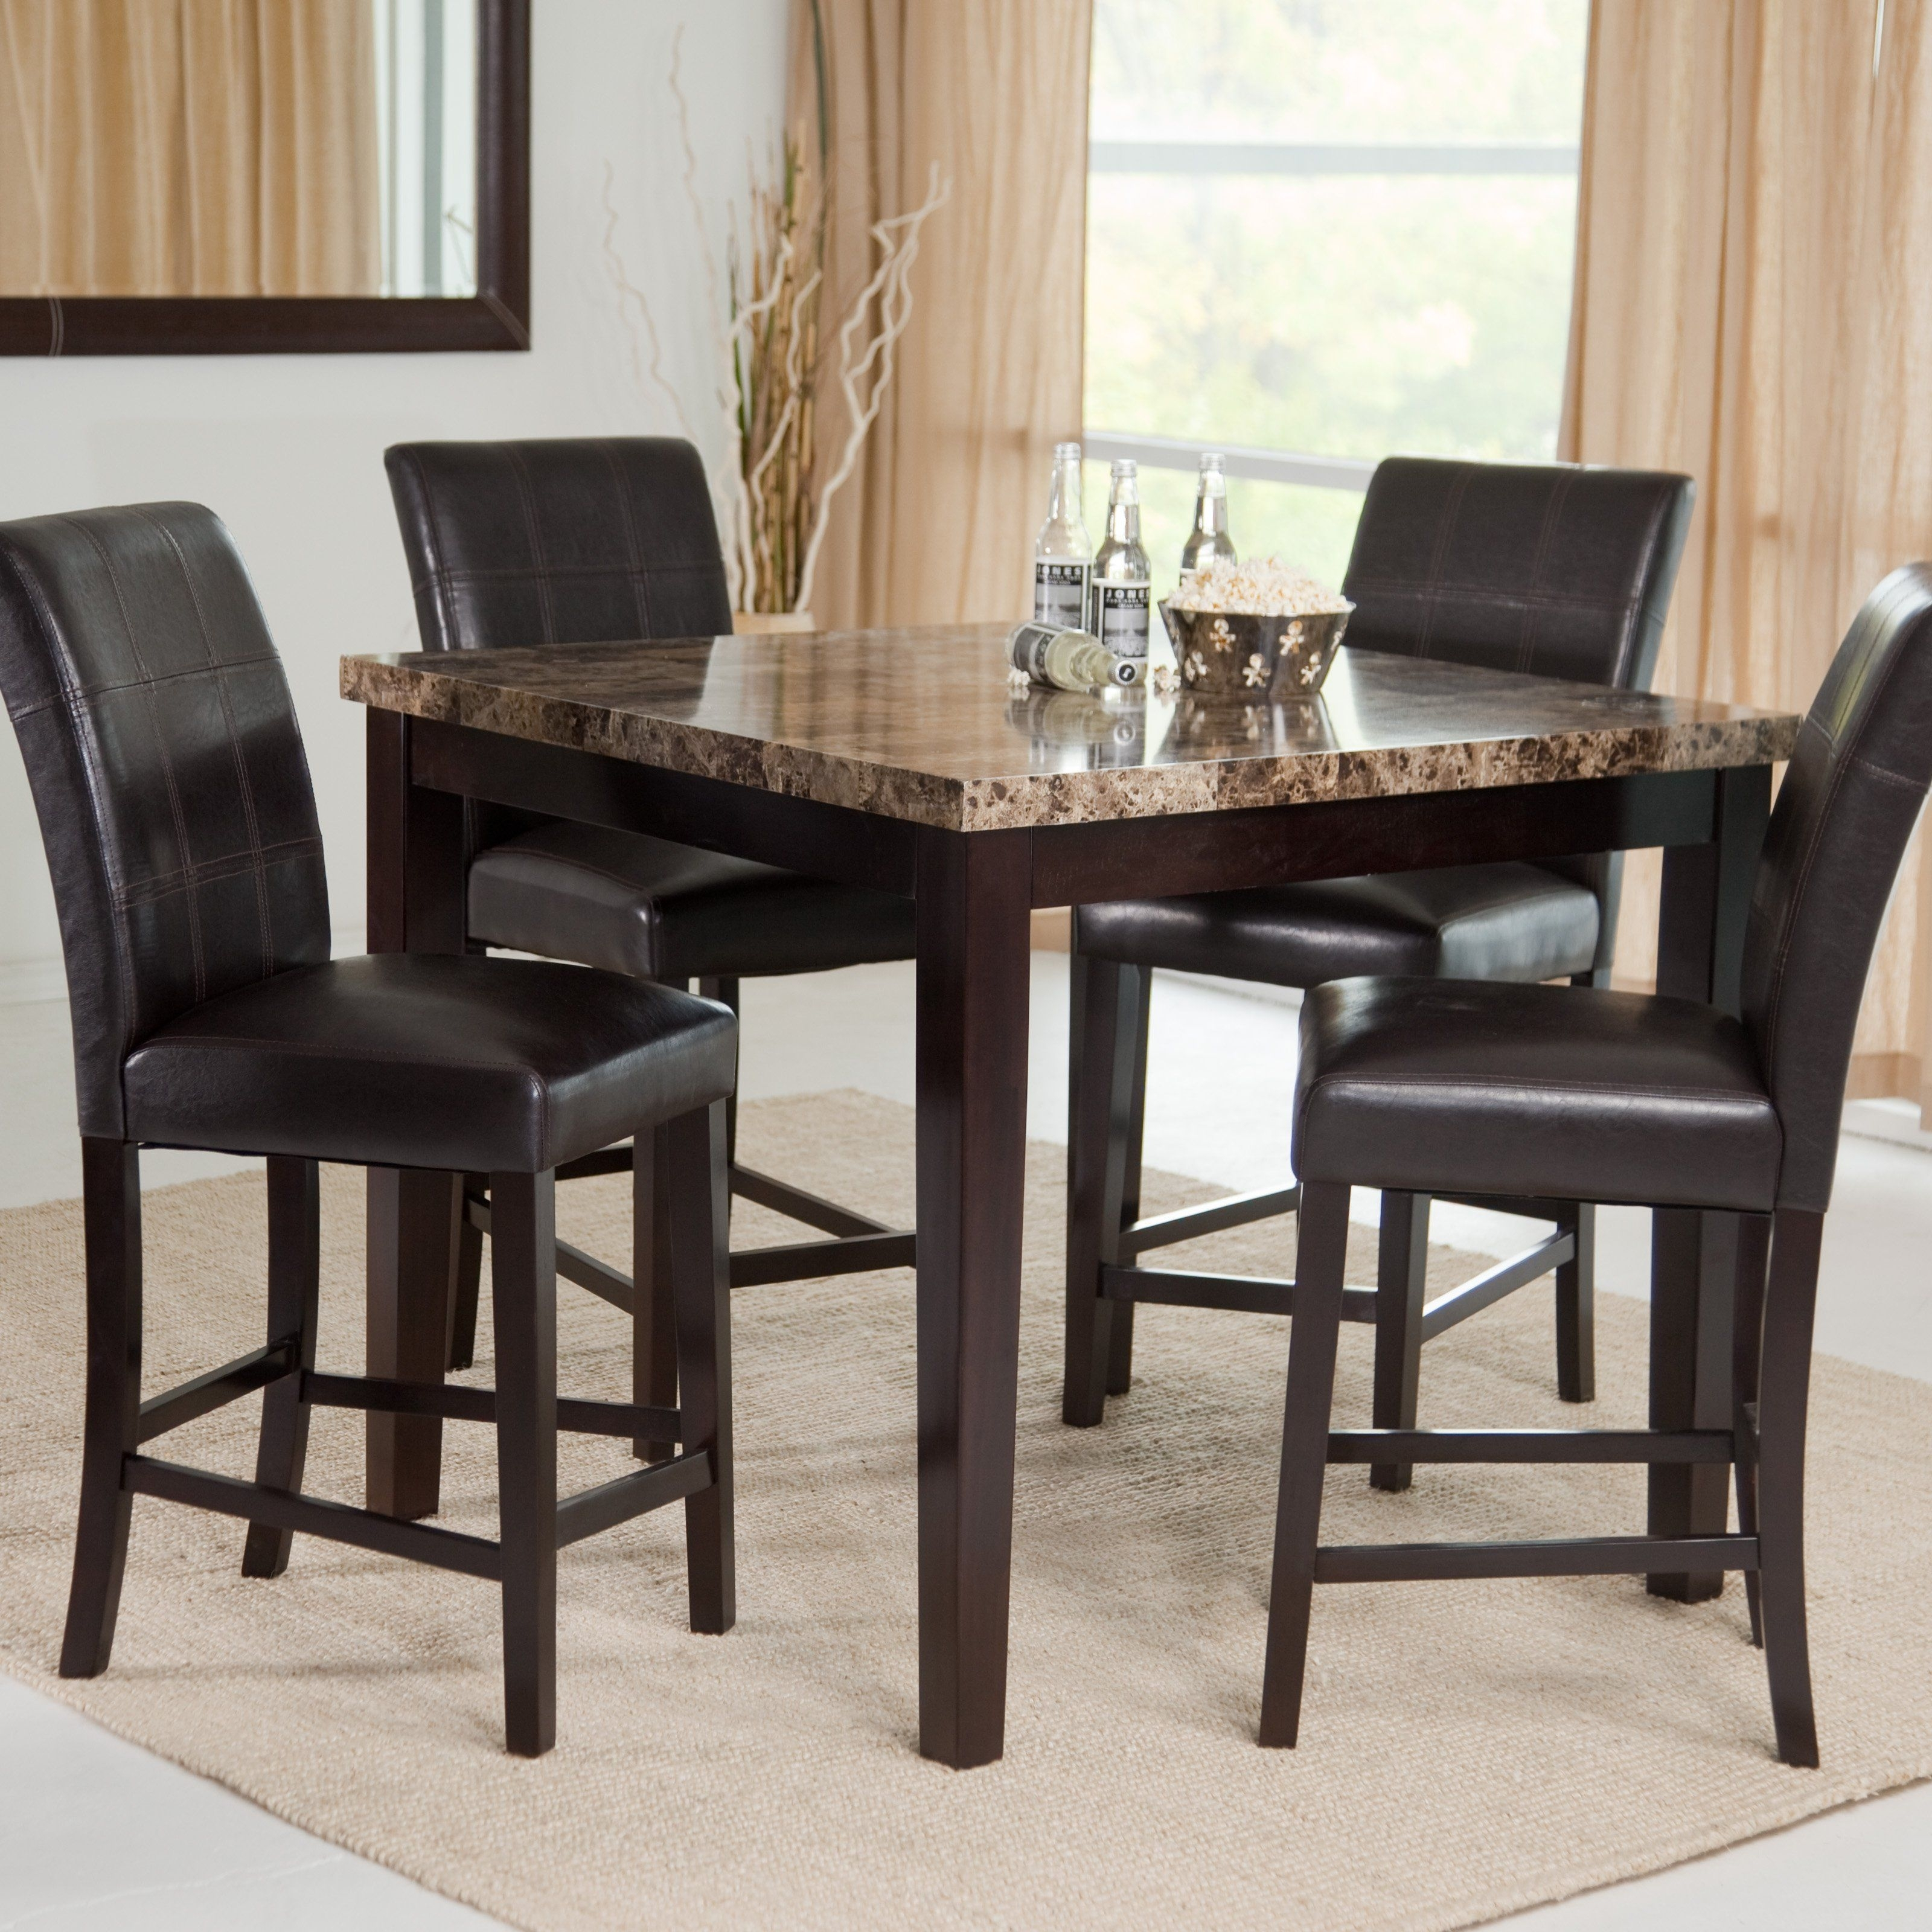 Have To Have It. Palazzo 5 Piece Counter Height Dining Set – $ (Image 11 of 20)